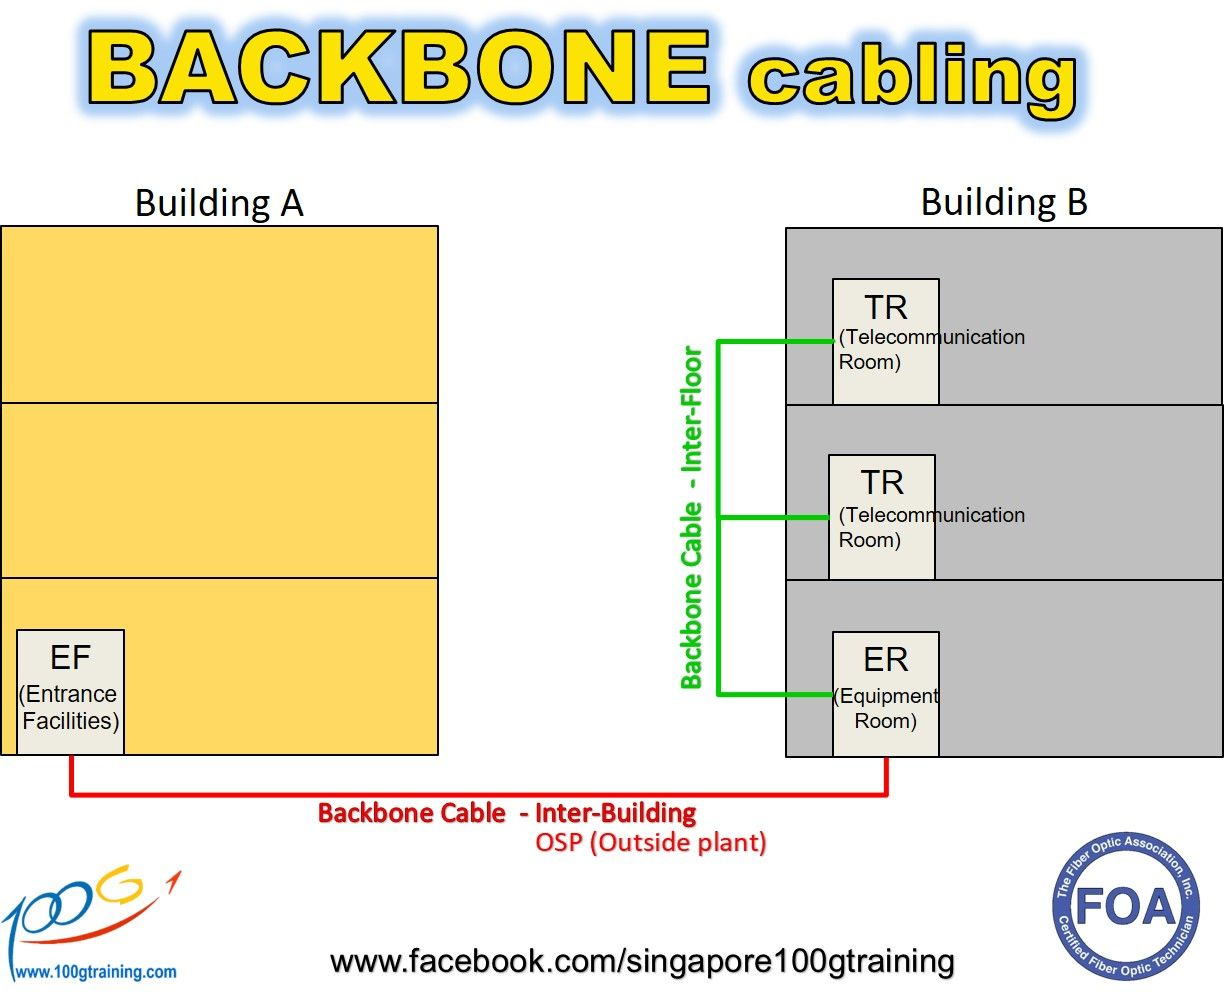 Backbone Cabling Is The Inter Building And Intra Cable Structured Wiring Guide Connections In